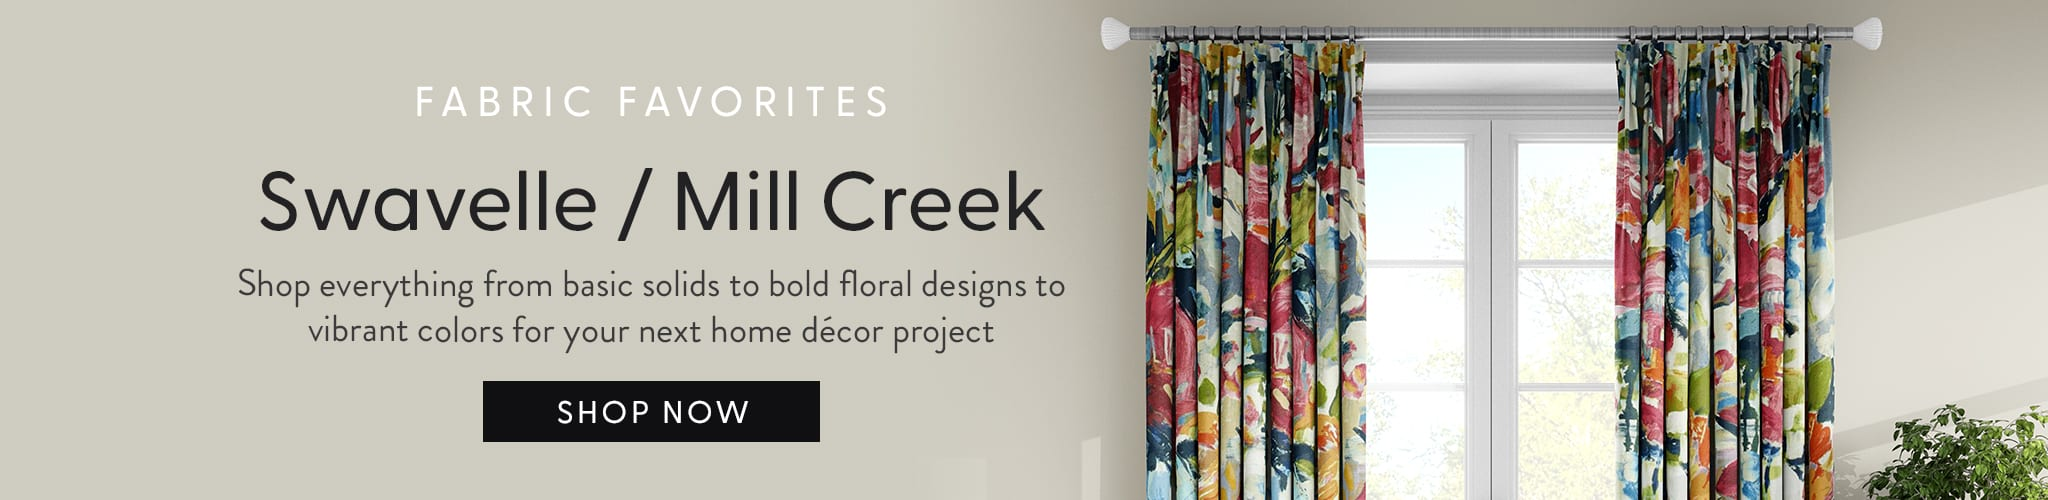 Fabric Favorites: Swavelle/Millcreek Shop everything from basic solids to bold floral designs to vibrant colors for your next home decor project.